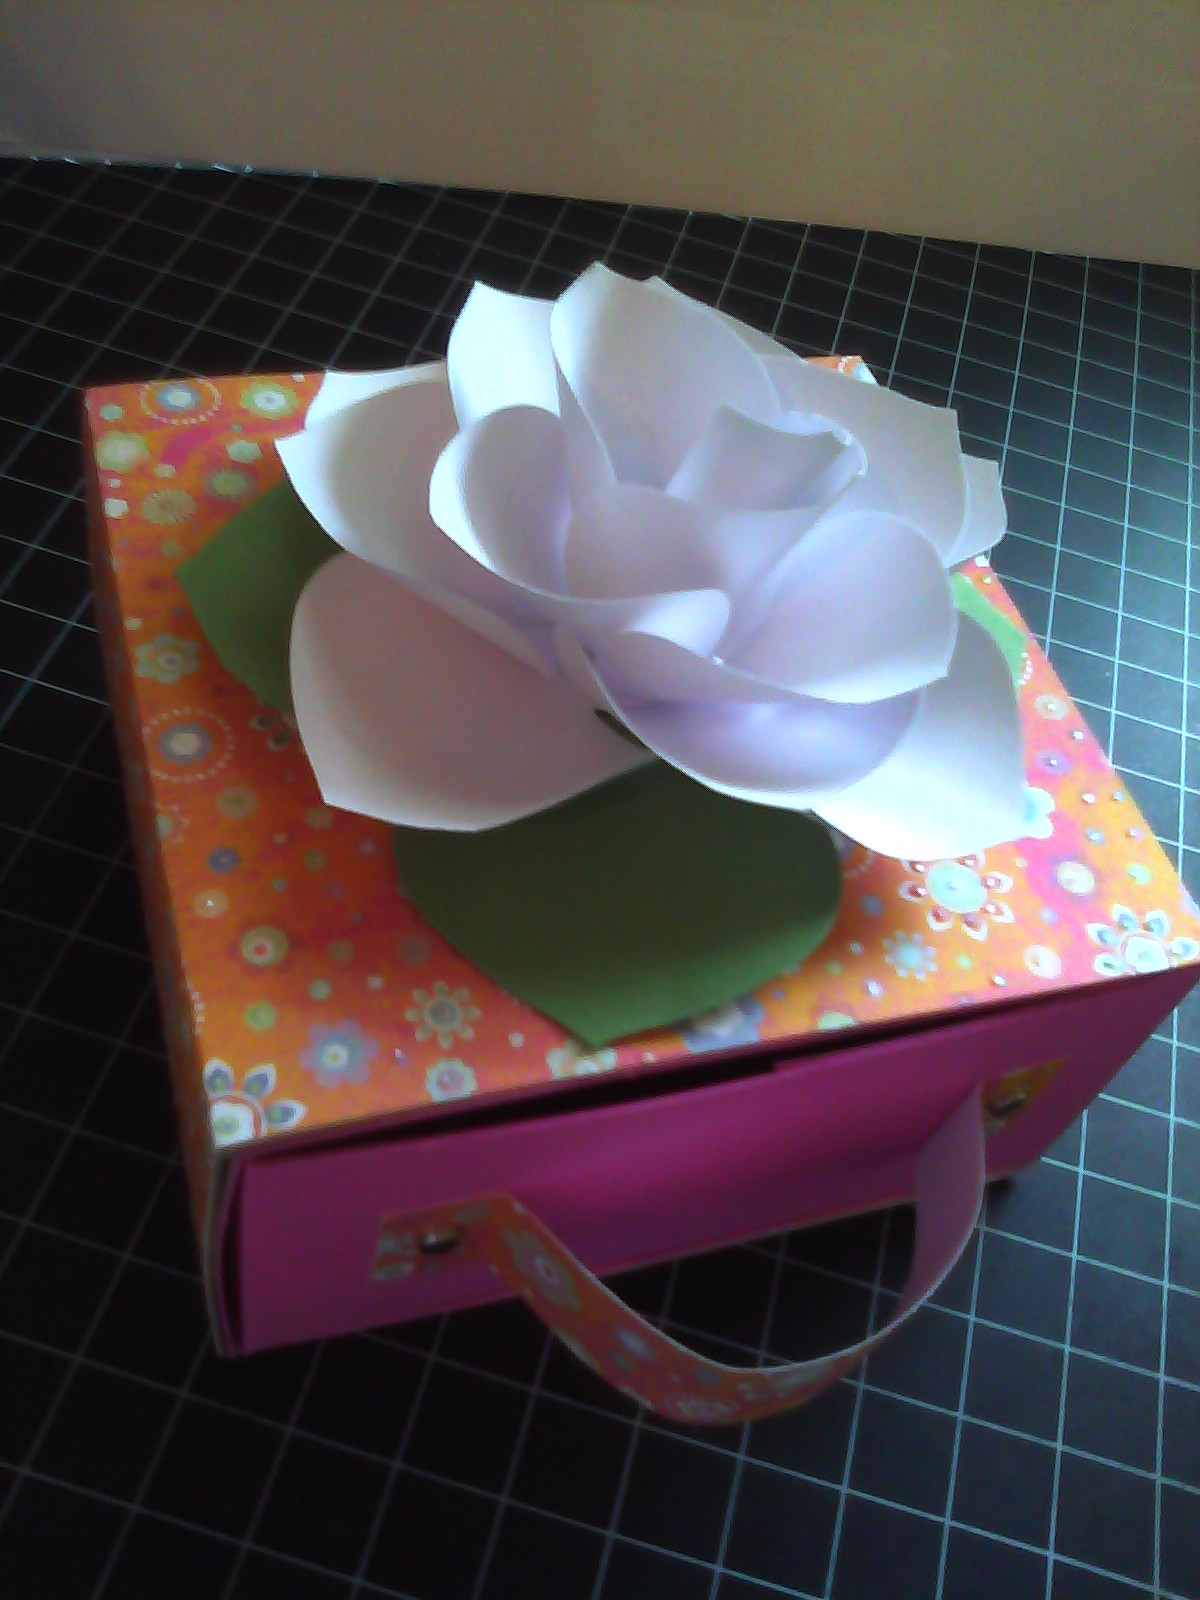 How to scrapbook a box - I Told You That I Was Going To Show You Some Cool Things You Can Make With Chipboard Recycled From Things Around Your Home This Box Was Made Out Of A